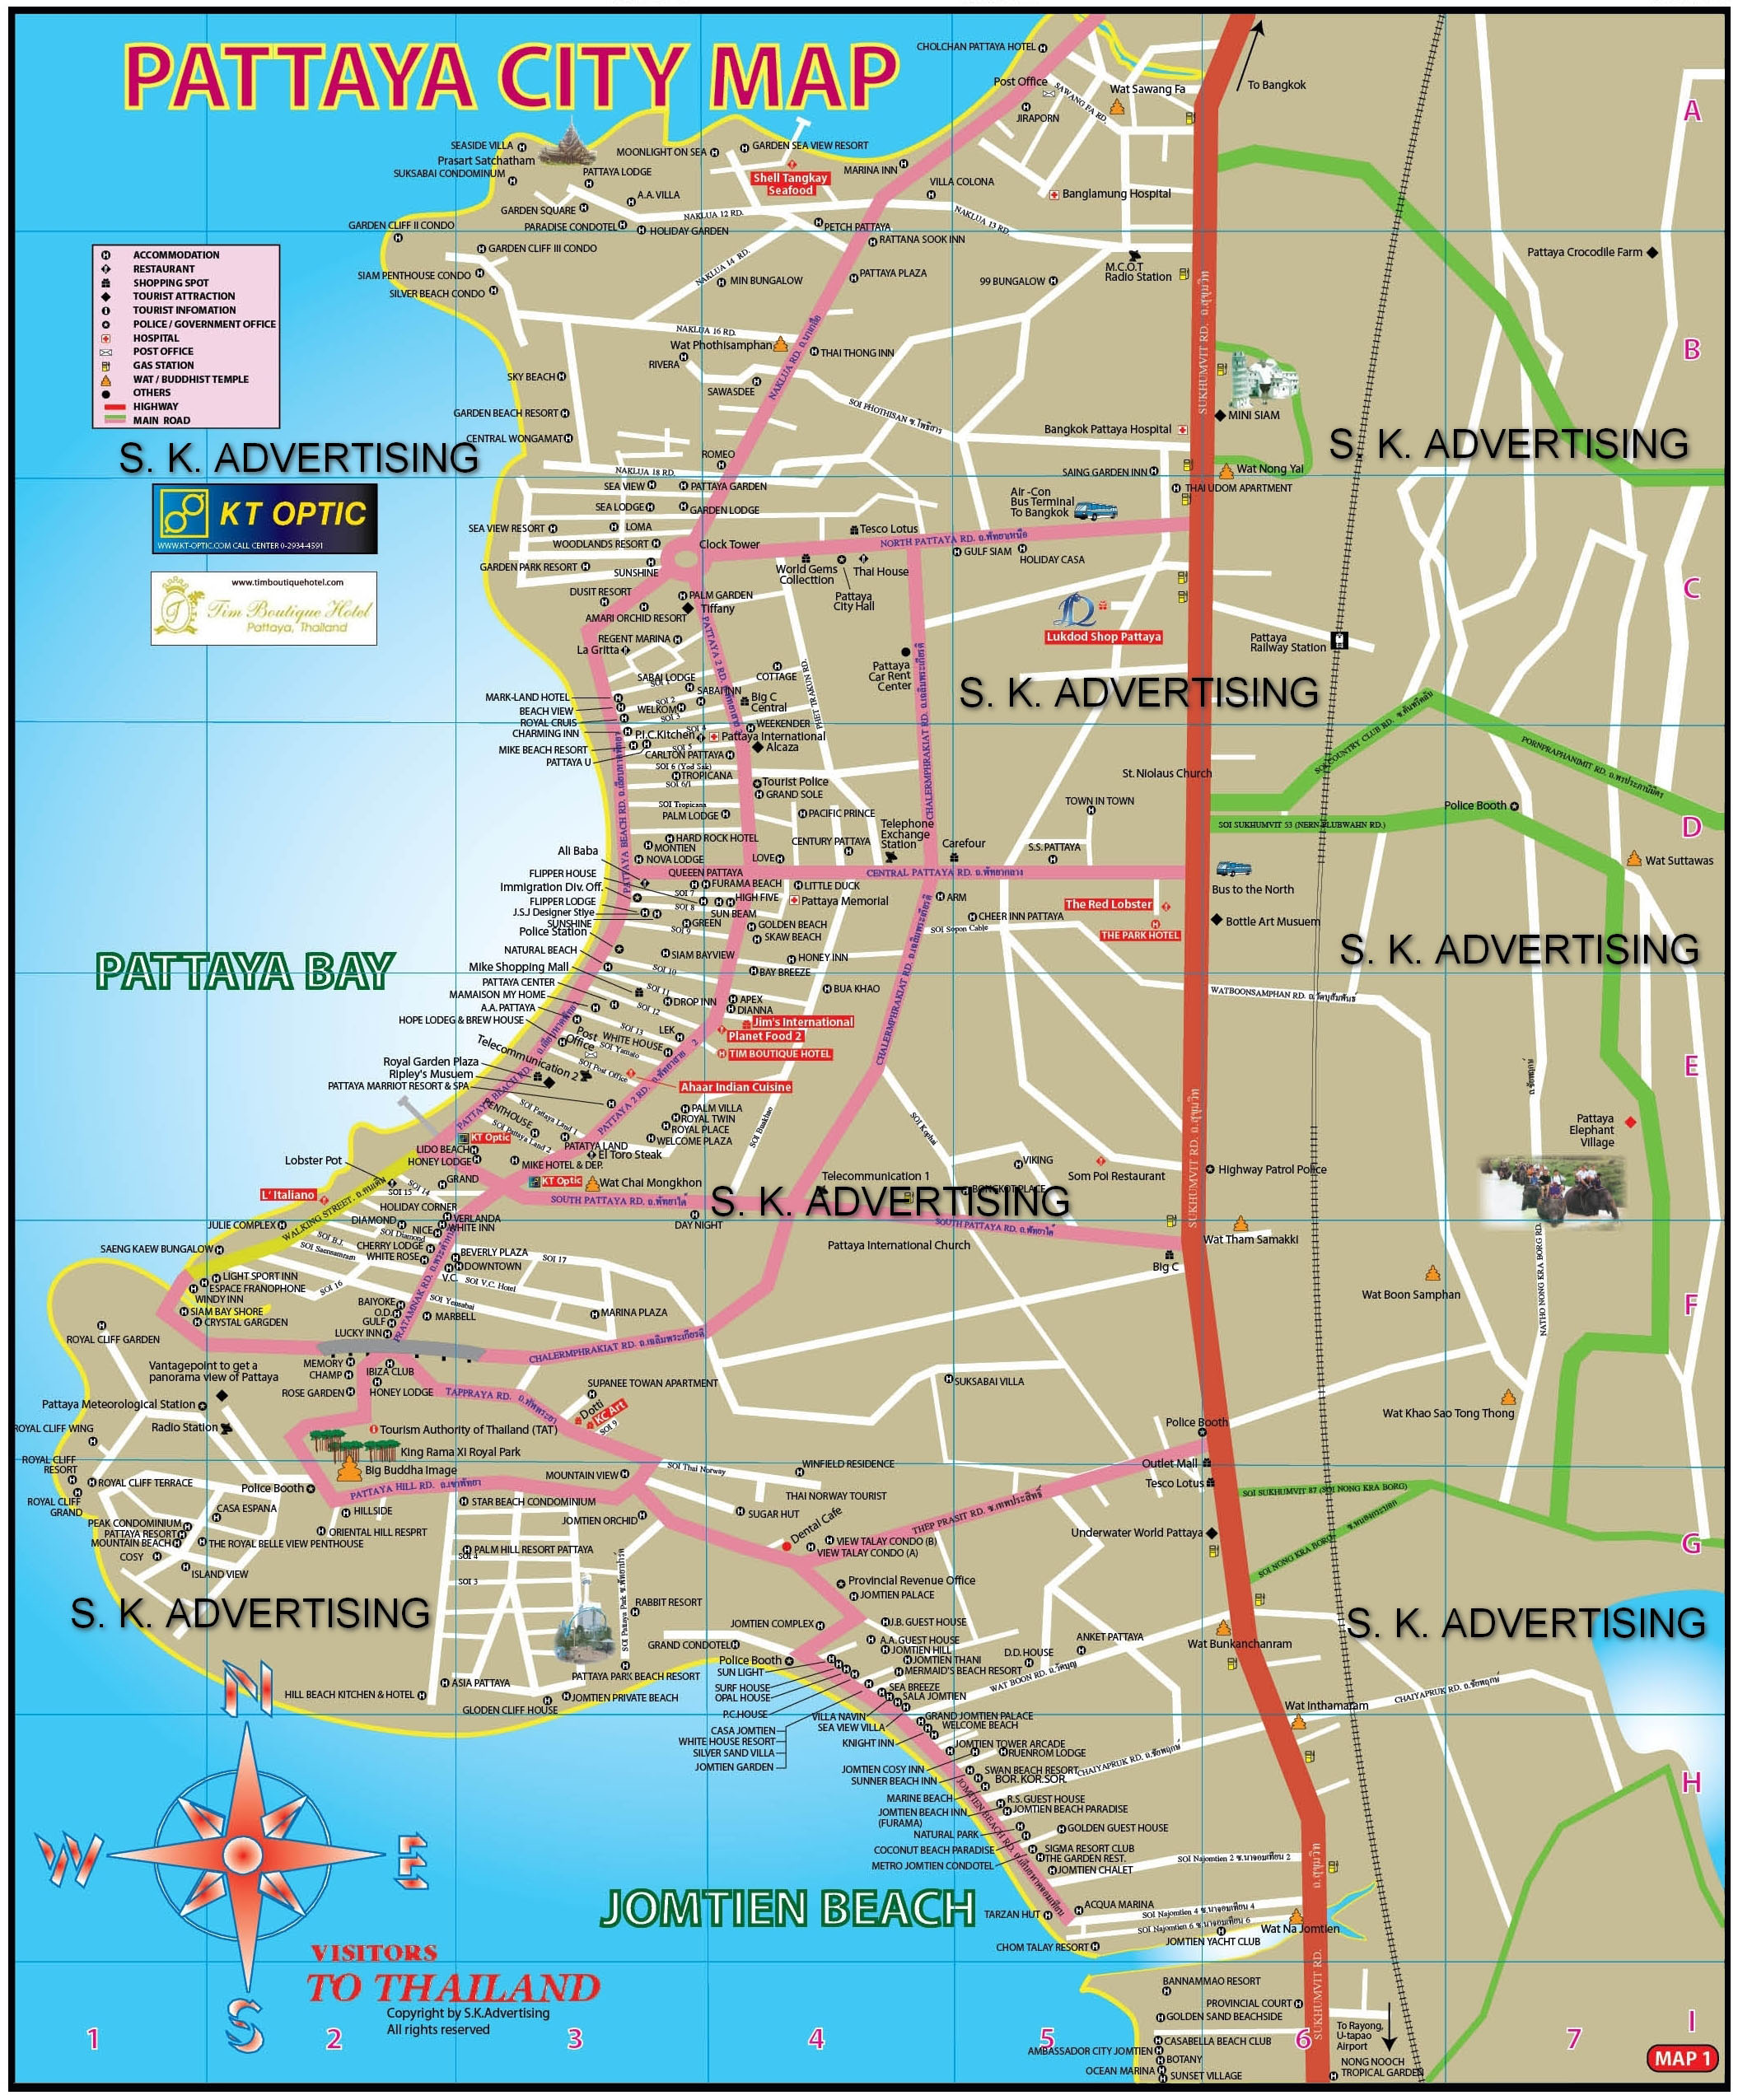 Pattaya City Map